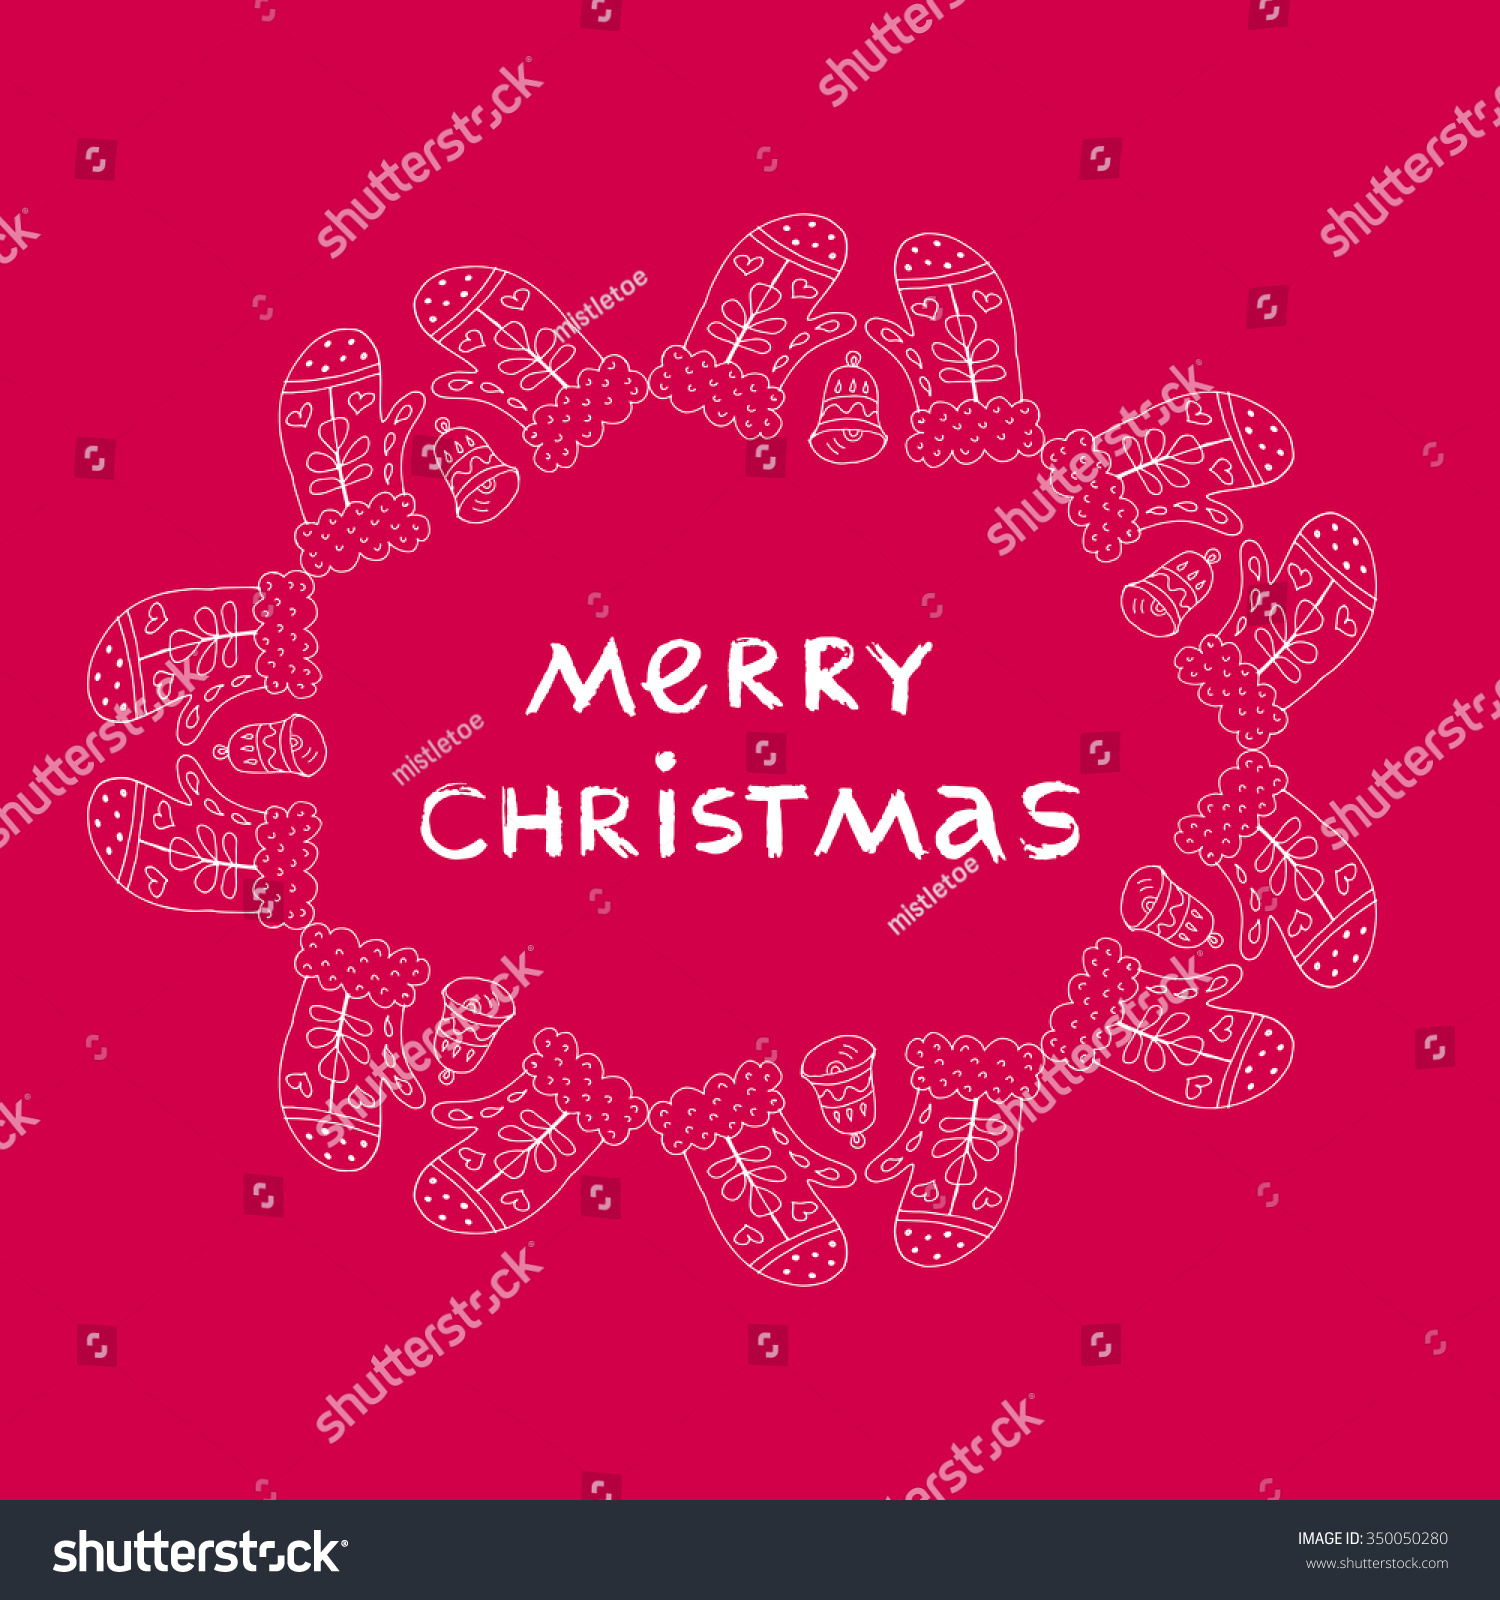 Unique Hand Drawn Christmas Greeting Card Stock Vector 350050280